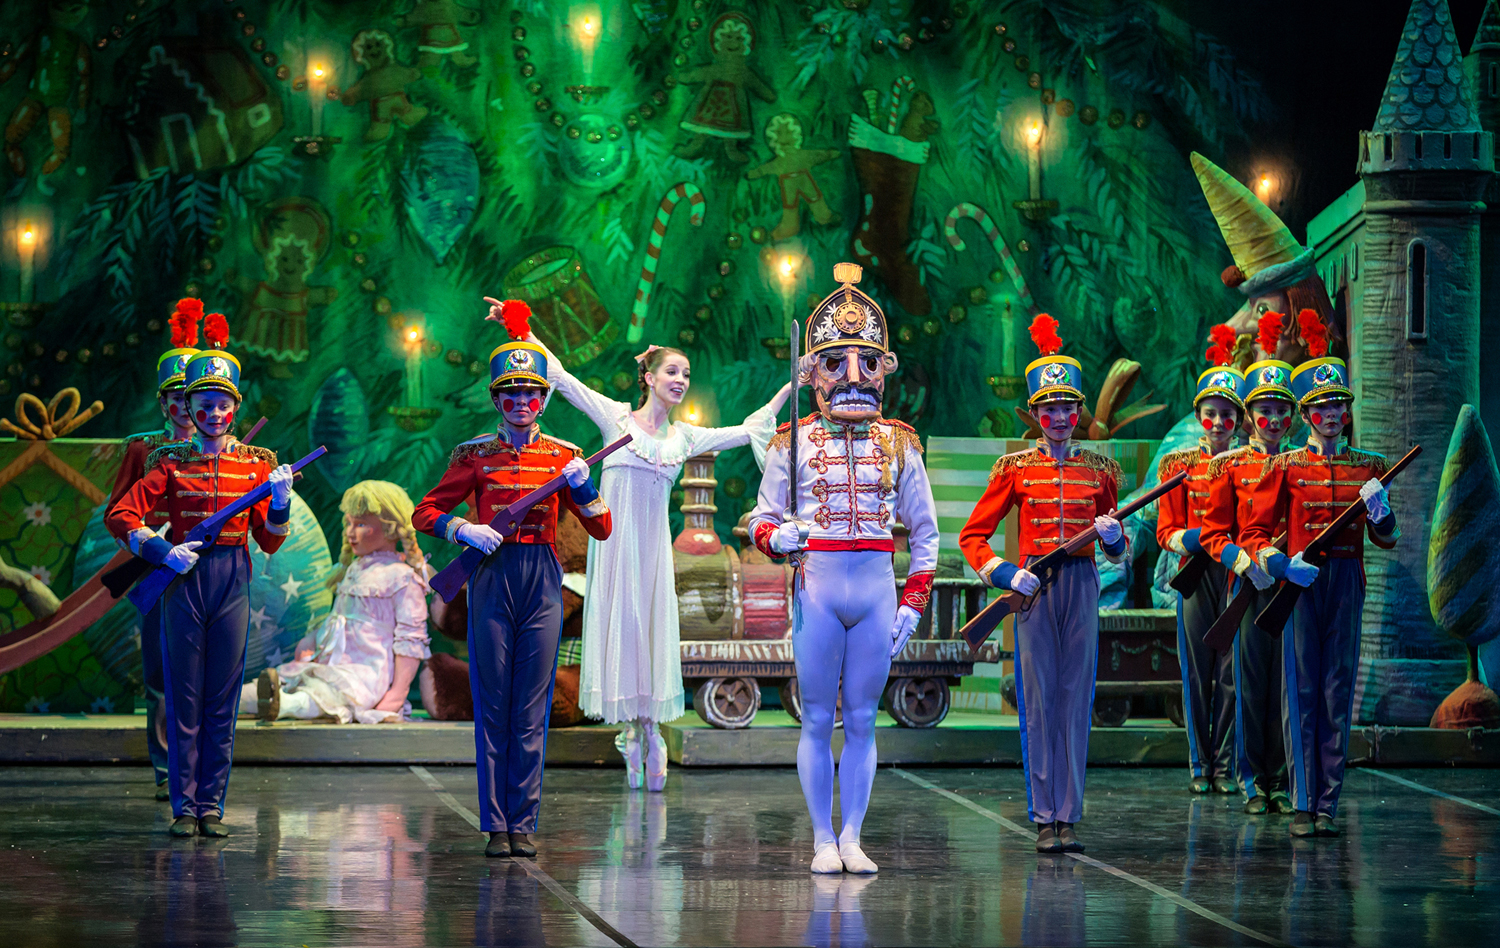 nutcracker2_edit